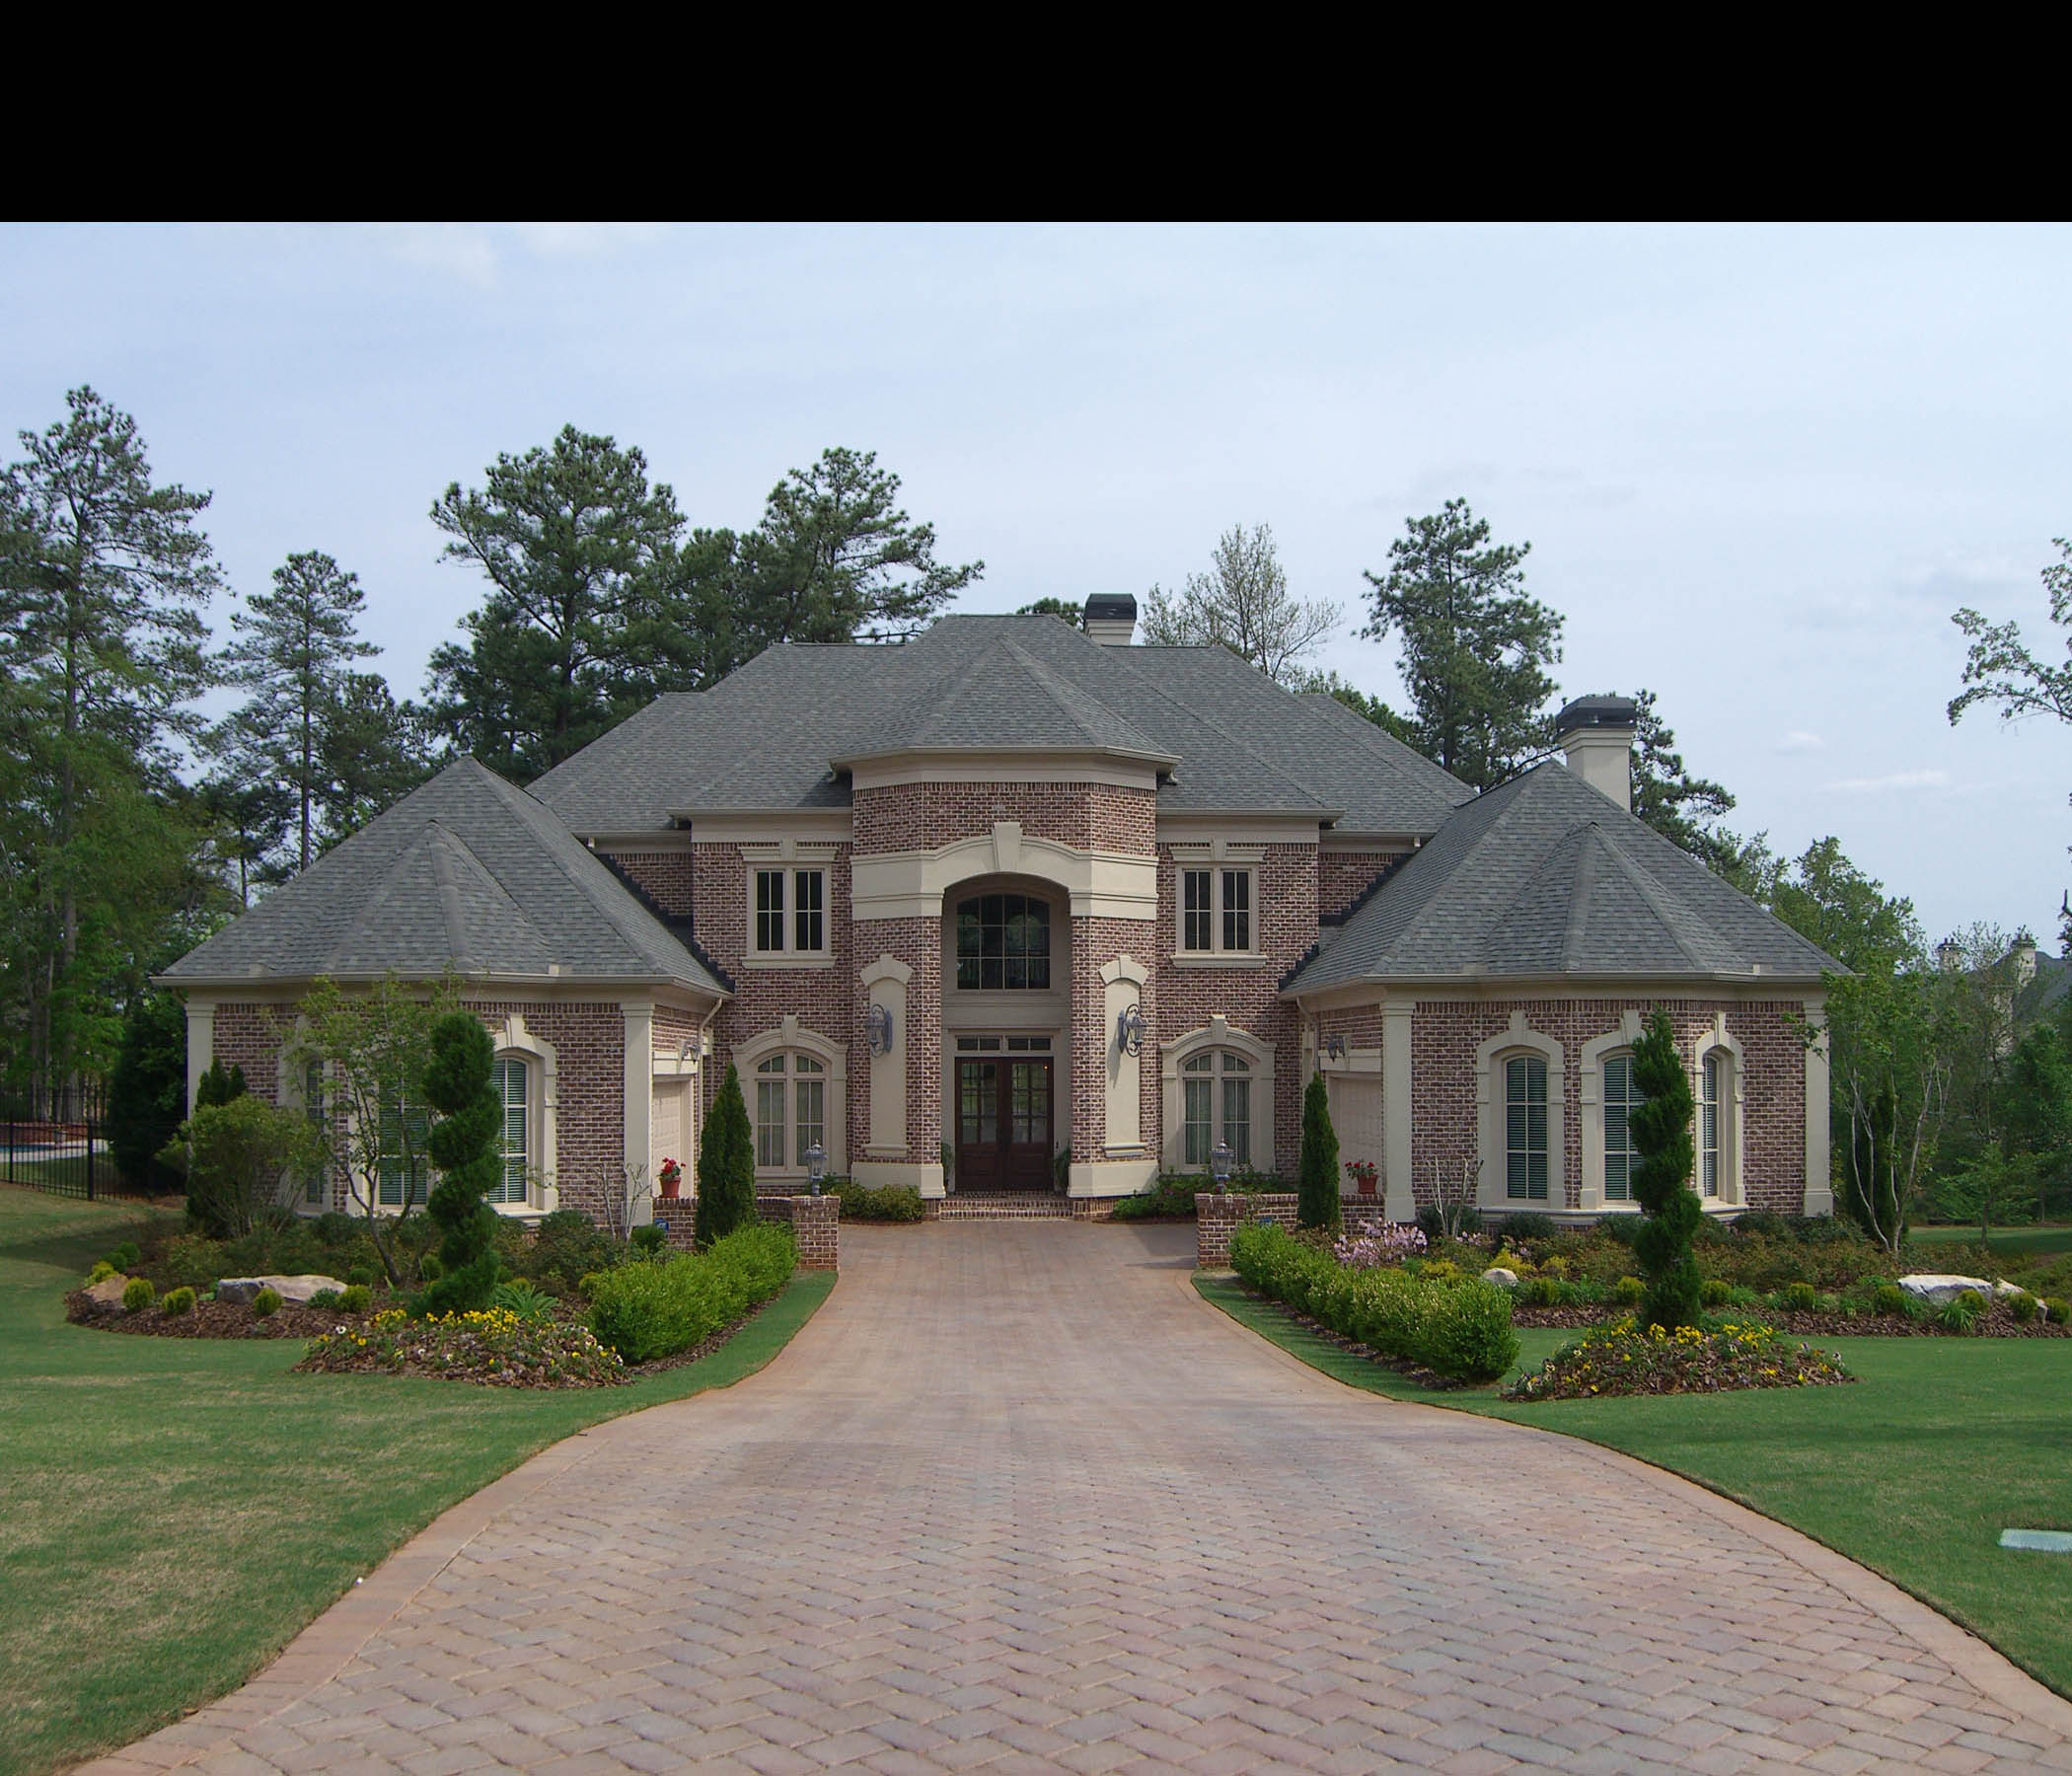 New Homes For Sale SugarLoaf Realty Partners Real Estate Property Listings GA Realtor Agent MLS